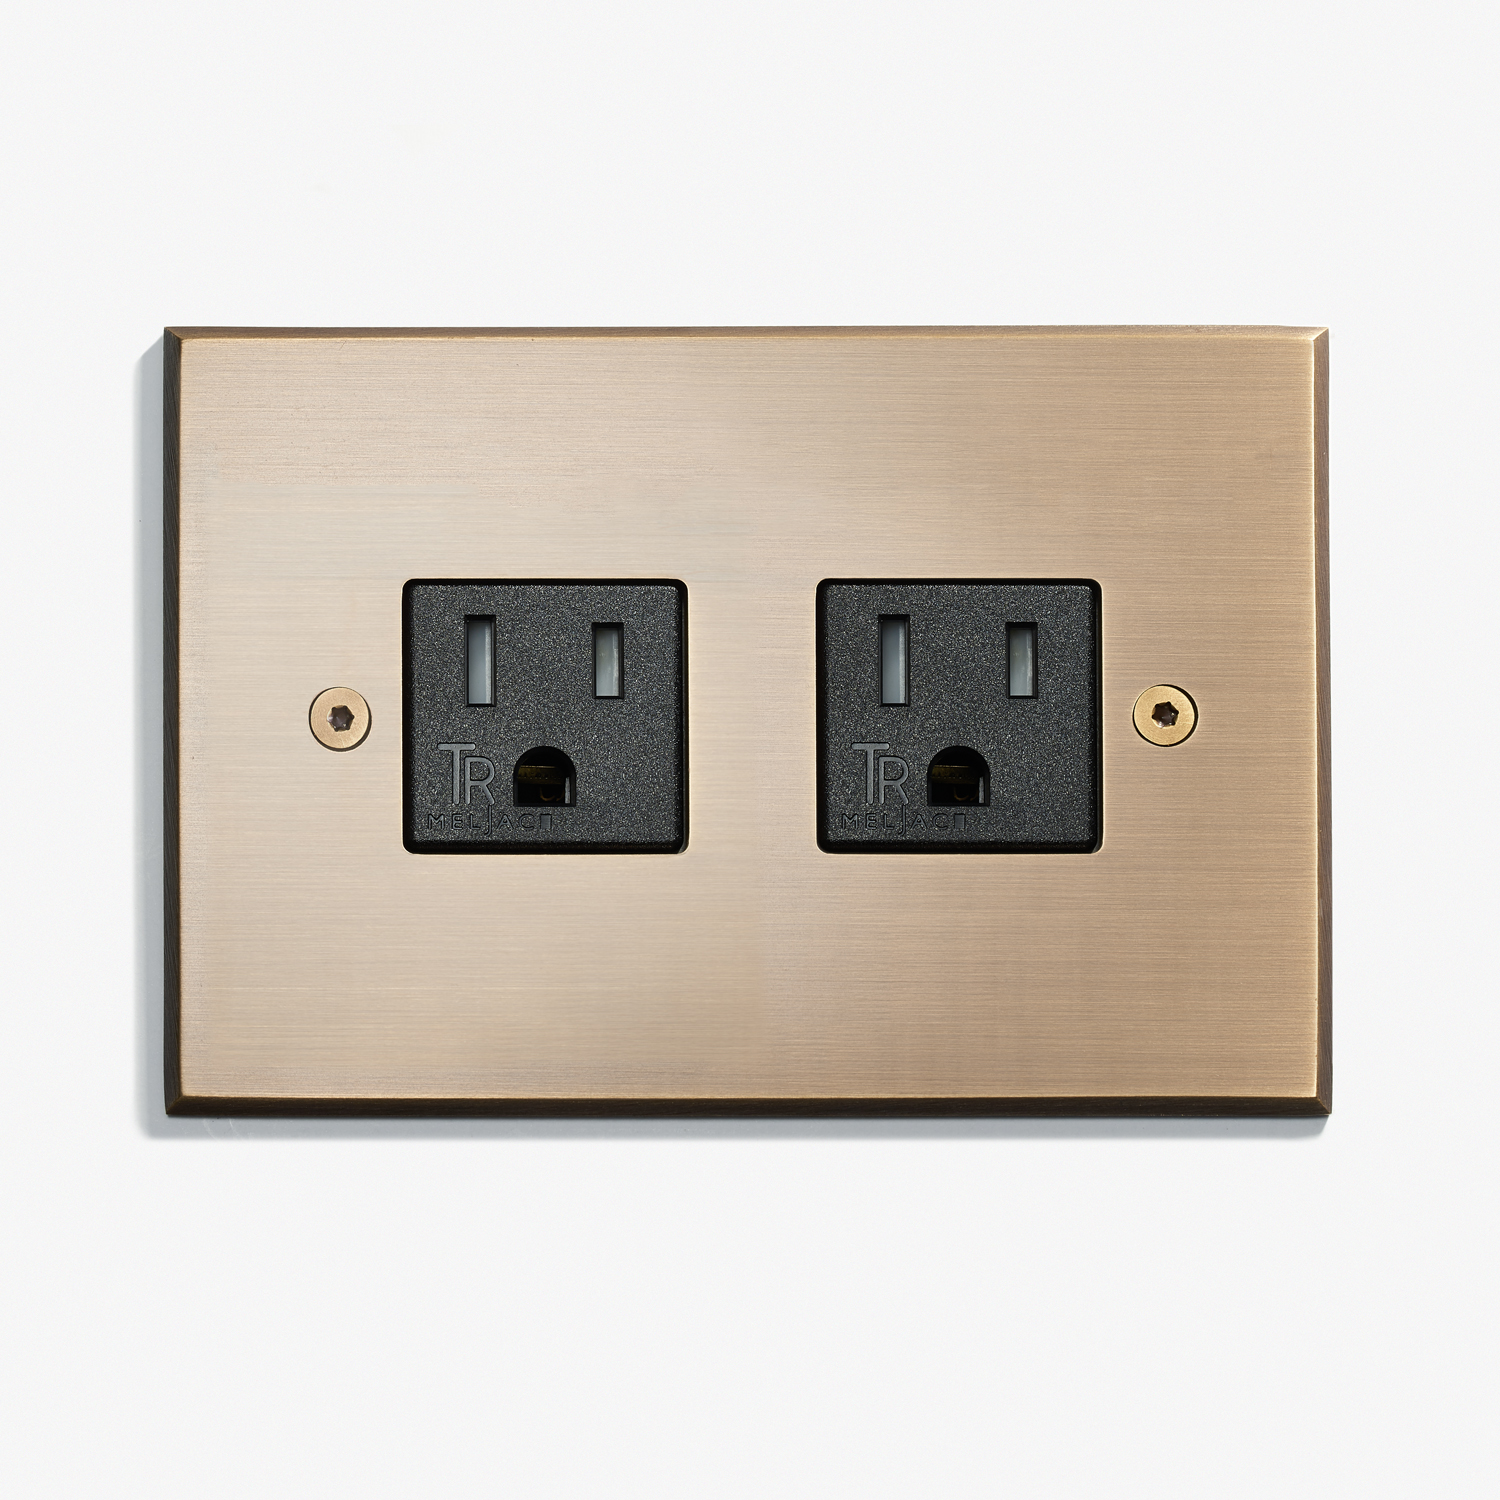 117 x 82 - Duplex Outlet - No Covers - Visible Screws - Bronze Medaille Allemand 1.jpg